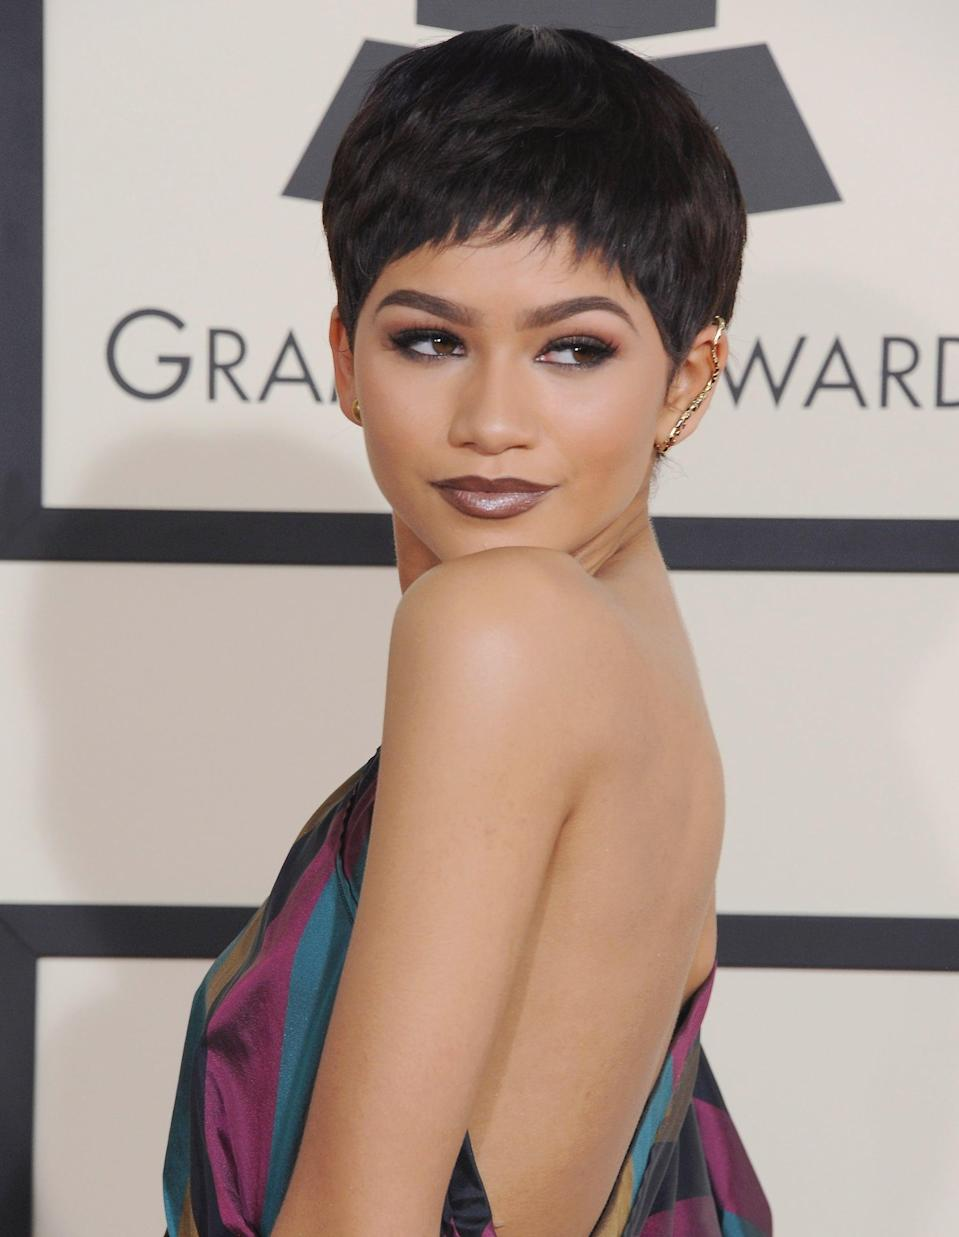 "<p><a class=""link rapid-noclick-resp"" href=""https://www.popsugar.com/Zendaya"" rel=""nofollow noopener"" target=""_blank"" data-ylk=""slk:Zendaya"">Zendaya</a> rocked an adorable pixie cut at the Grammy Awards in 2015 (though she quickly assured fans that <a href=""http://www.etonline.com/awards/grammys/159376_zendaya_debuts_dramatic_pixie_do_at_the_grammys"" class=""link rapid-noclick-resp"" rel=""nofollow noopener"" target=""_blank"" data-ylk=""slk:she didn't actually cut her hair"">she didn't <em>actually </em>cut her hair</a>). </p>"